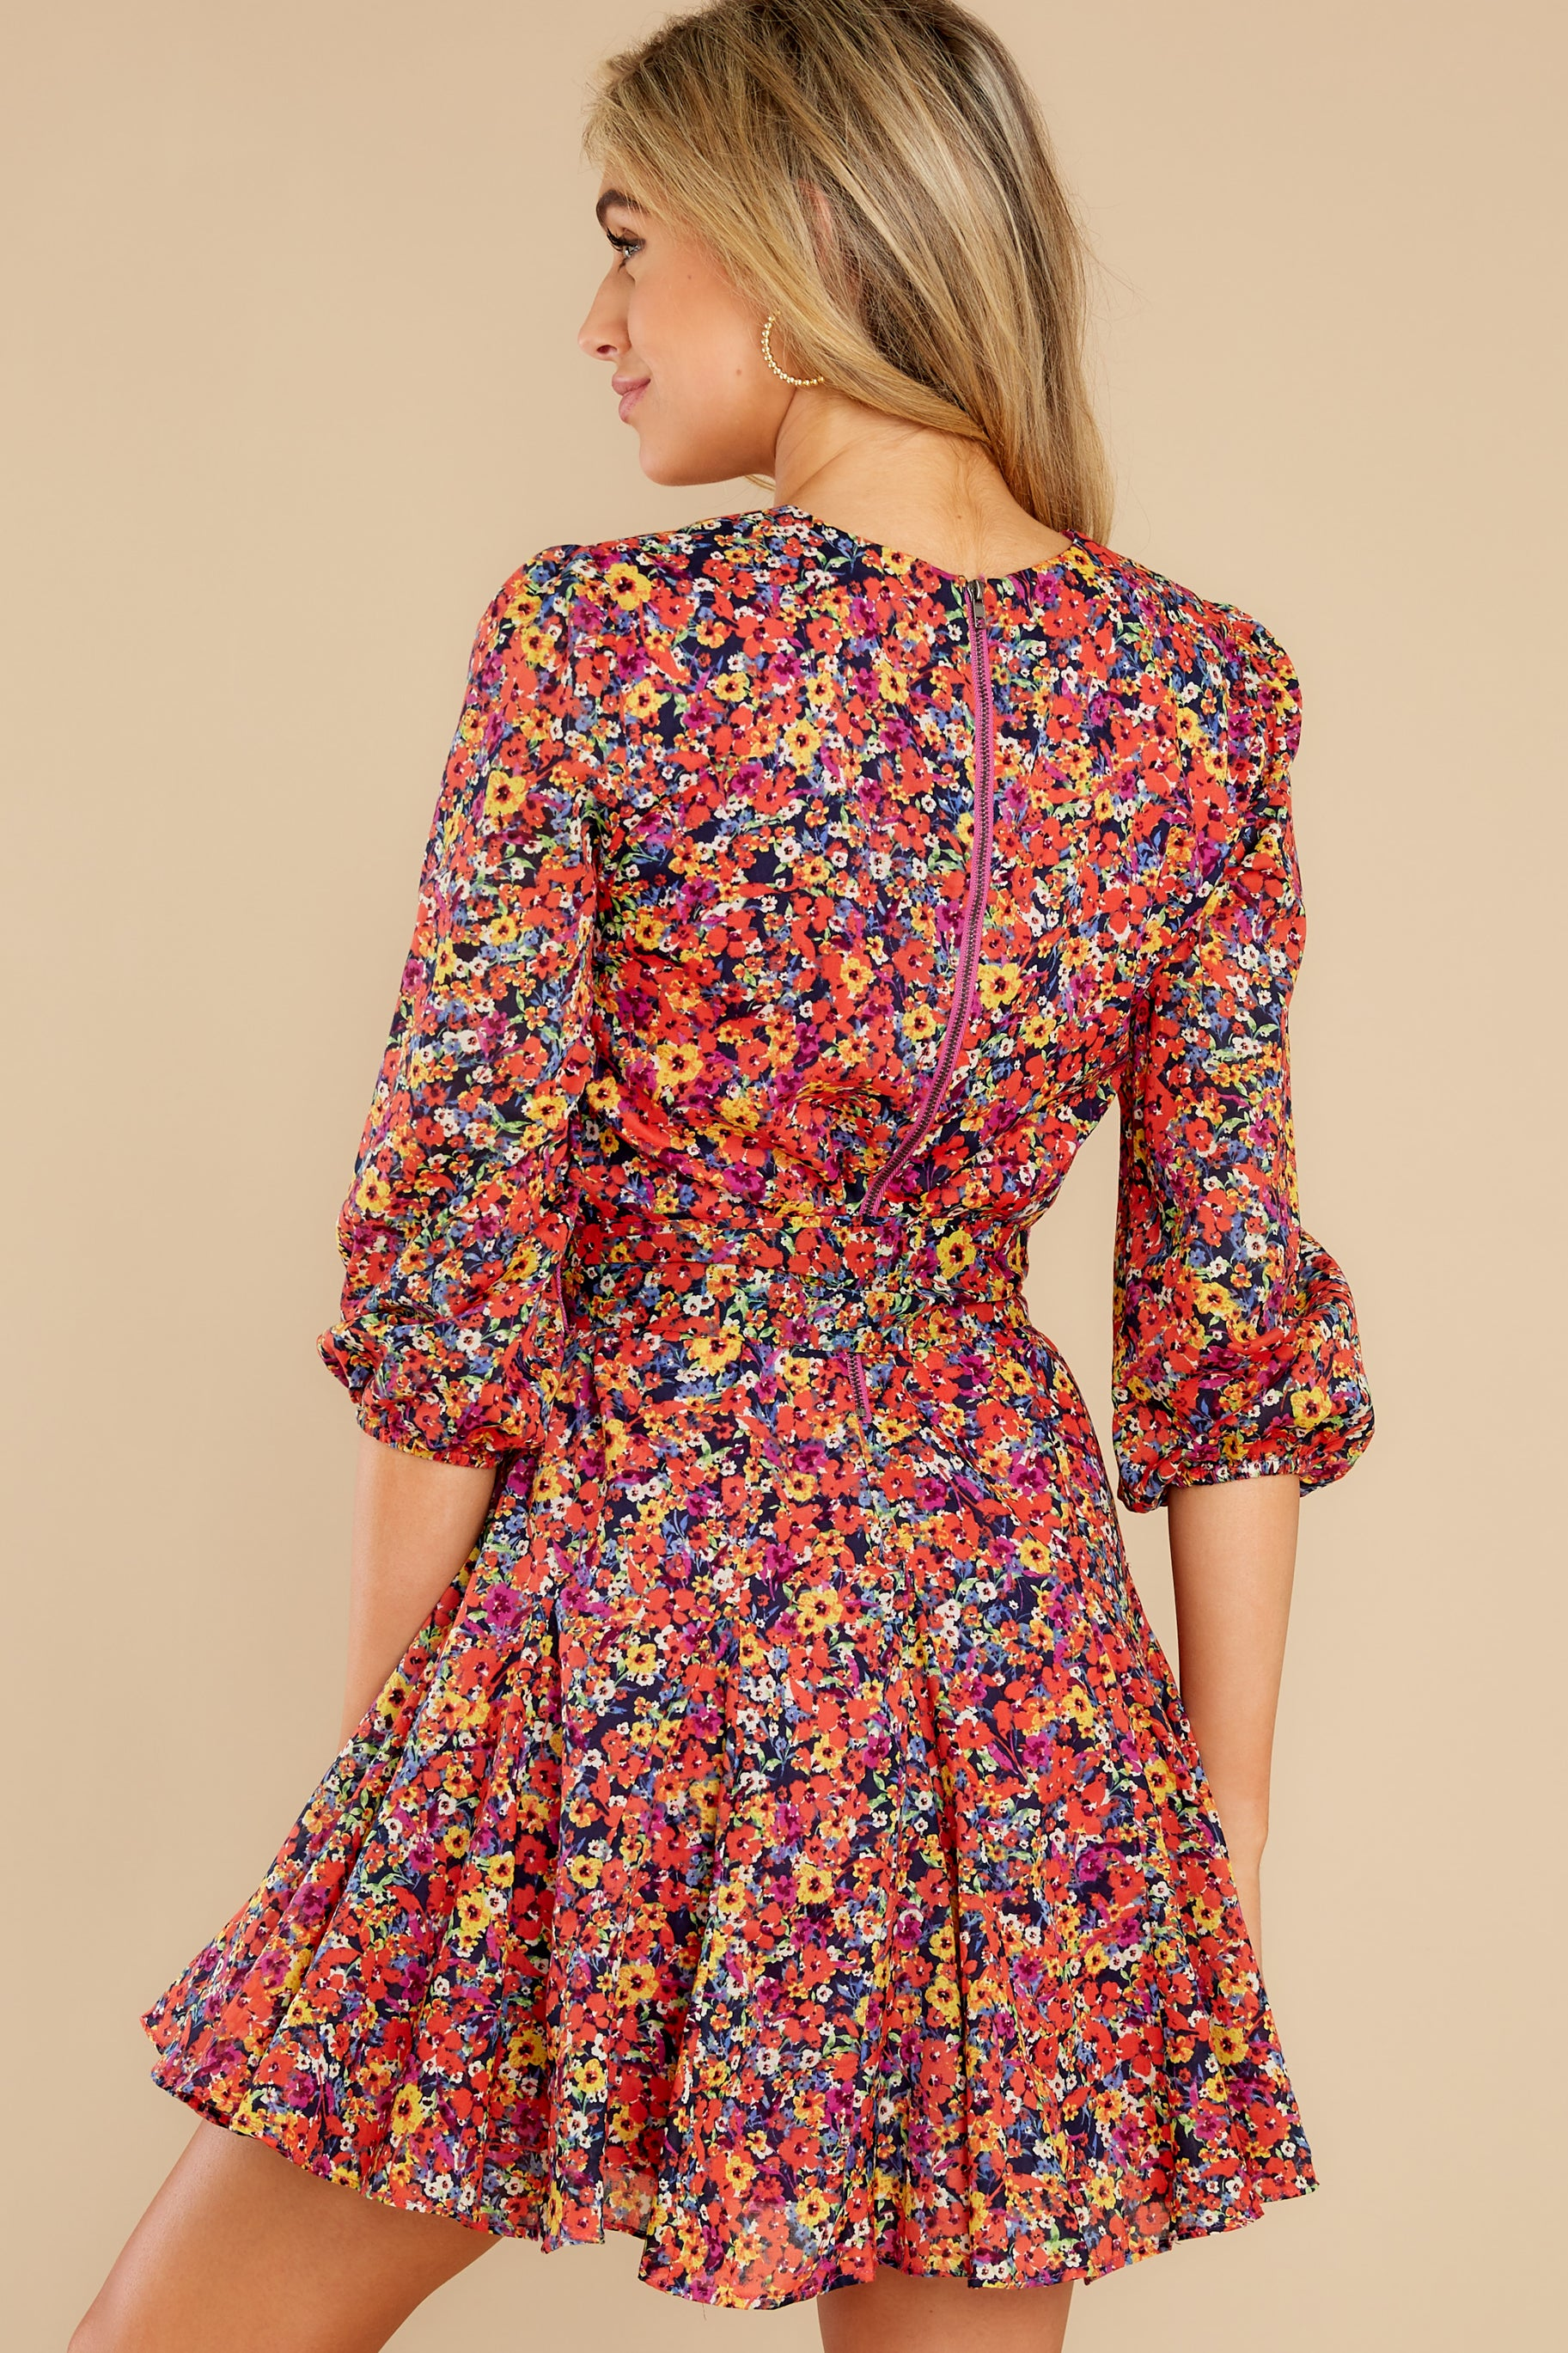 Chasing This Black Multi Floral Print Dress